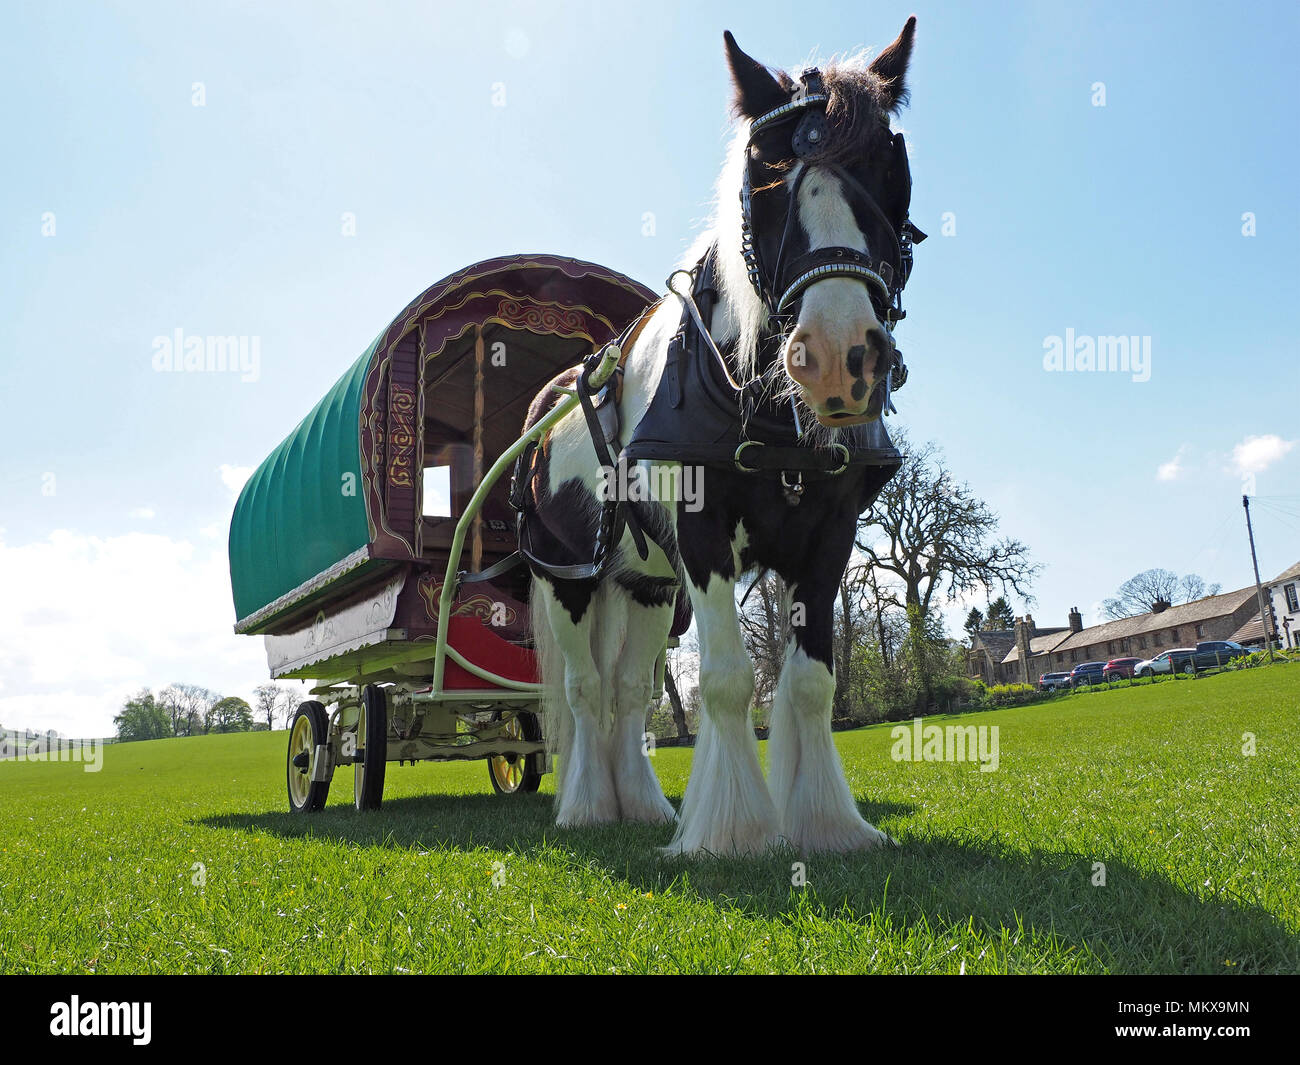 low down view of Gypsy horse with traditional 'Bowtop' or horse-drawn caravan standing out against the sky in a filed in Cumbria, England, UK - Stock Image